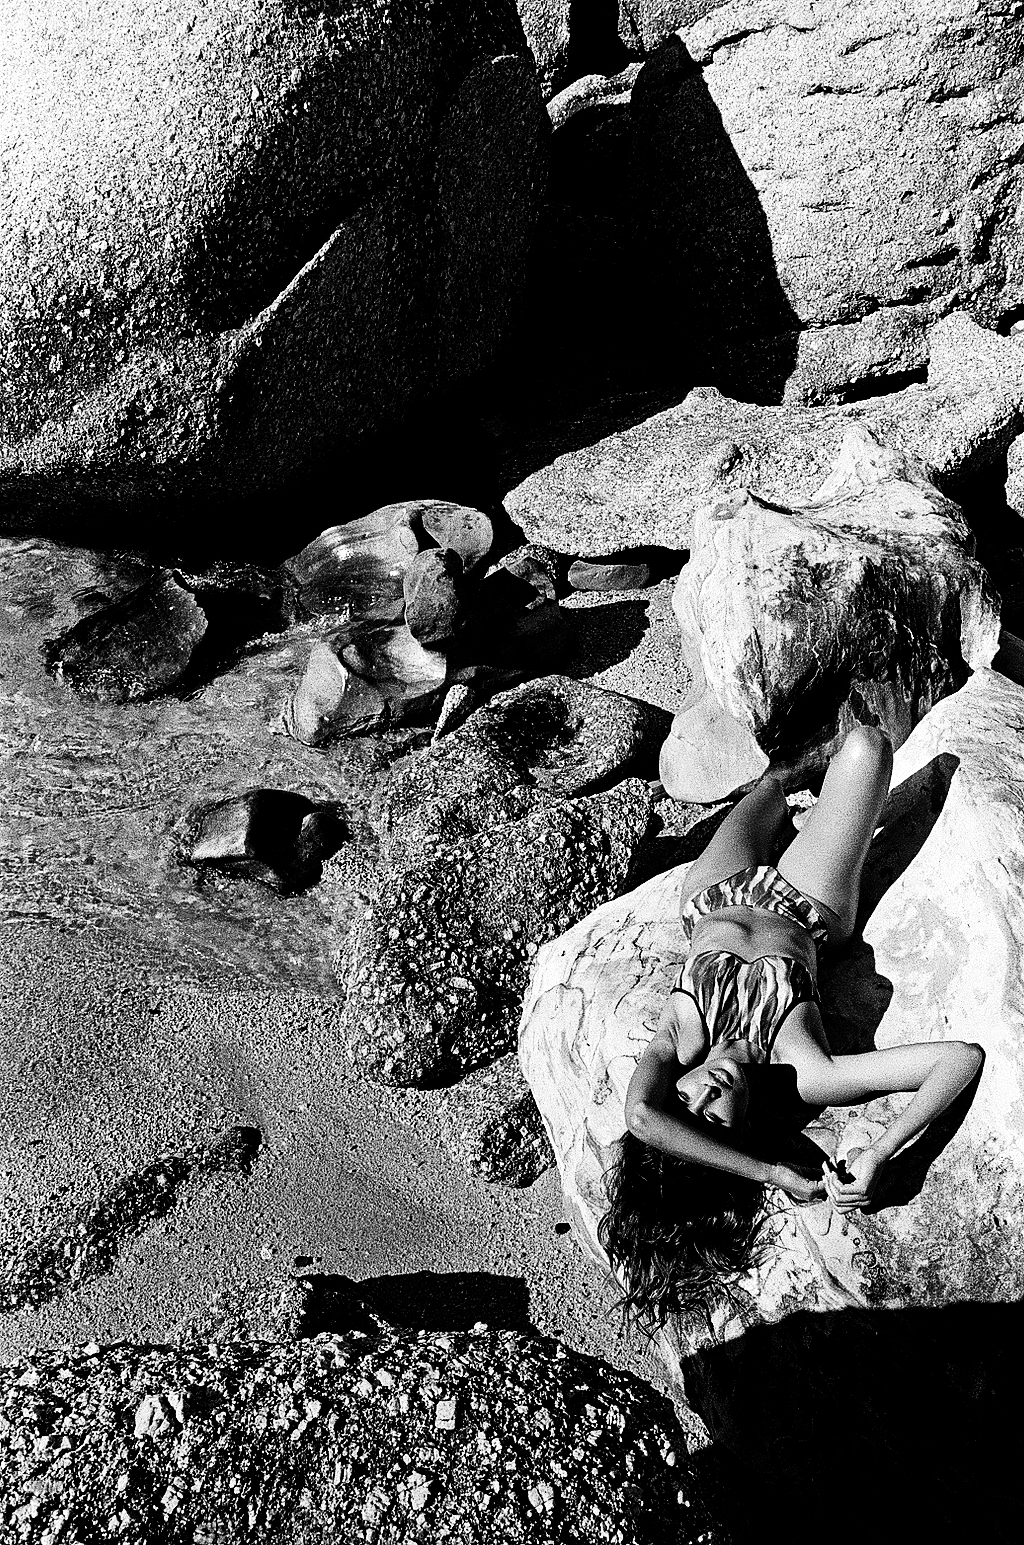 Secret Places Women  photoshoot models model lionsmag lions magazine fashion model fashion editorial cape town body art body blackandwhite bikini beachwear   // lionsmag.com - premium nude photography magazine